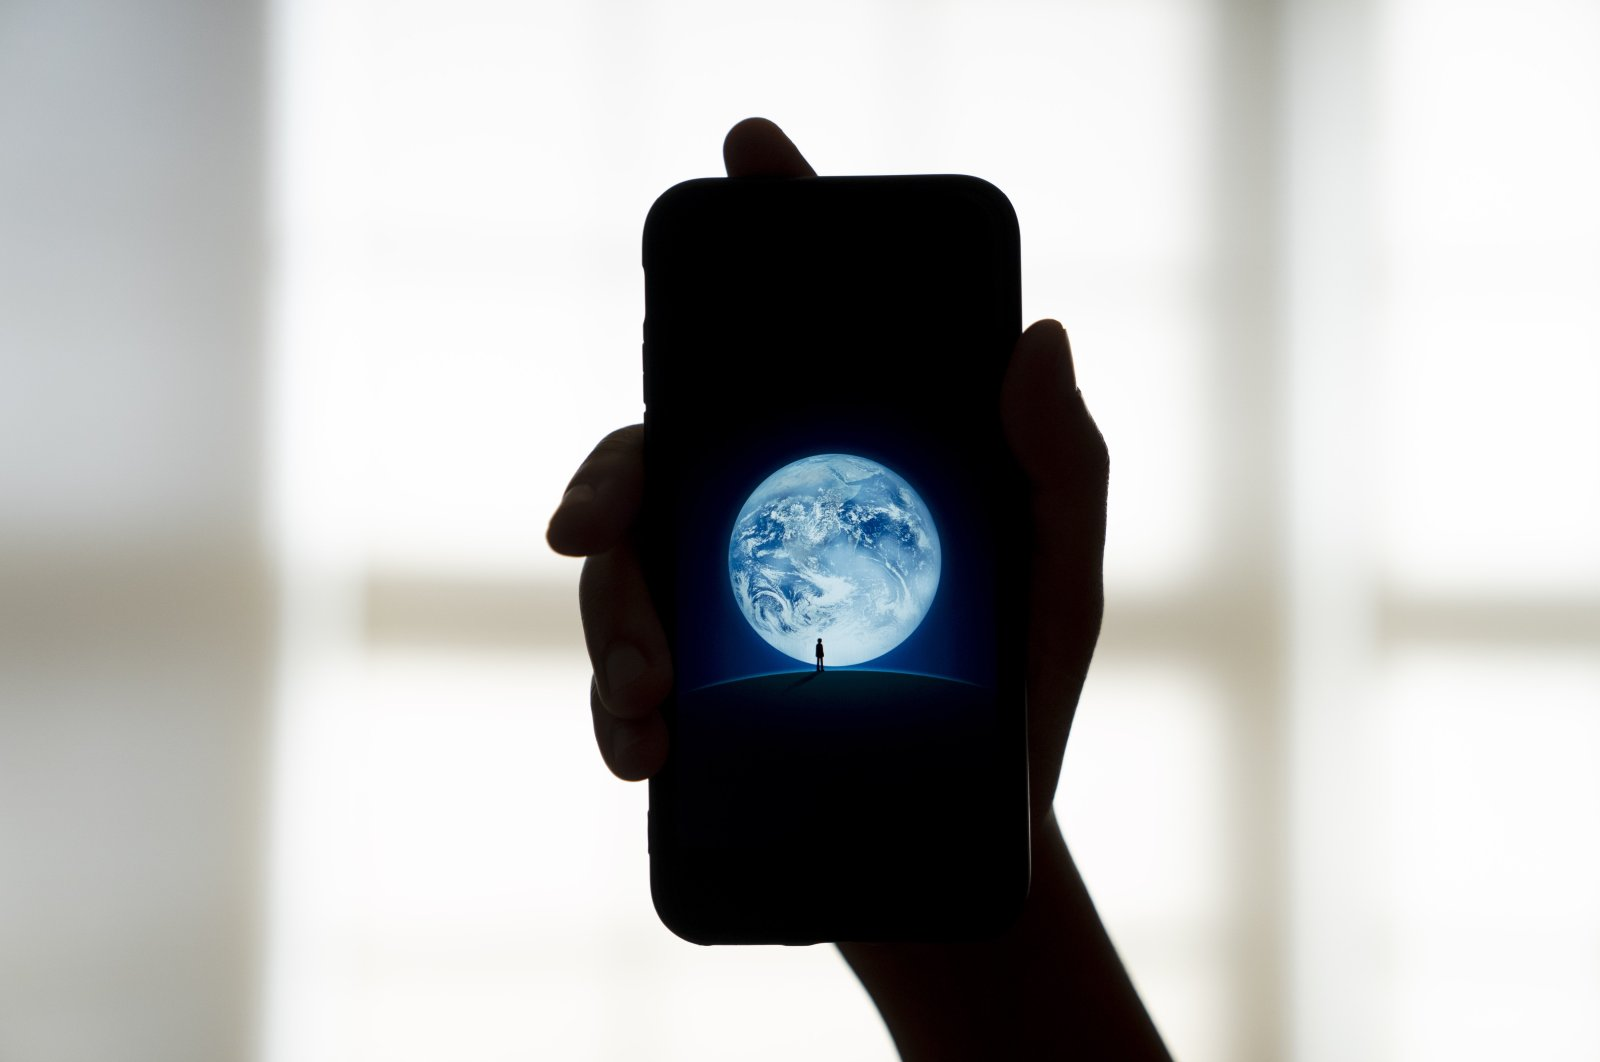 The Tencent Holdings Ltd. WeChat app is displayed on a smartphone in an arranged photograph taken in Arlington, Virginia, U.S., Aug. 7, 2020. (Photo by Getty Images)